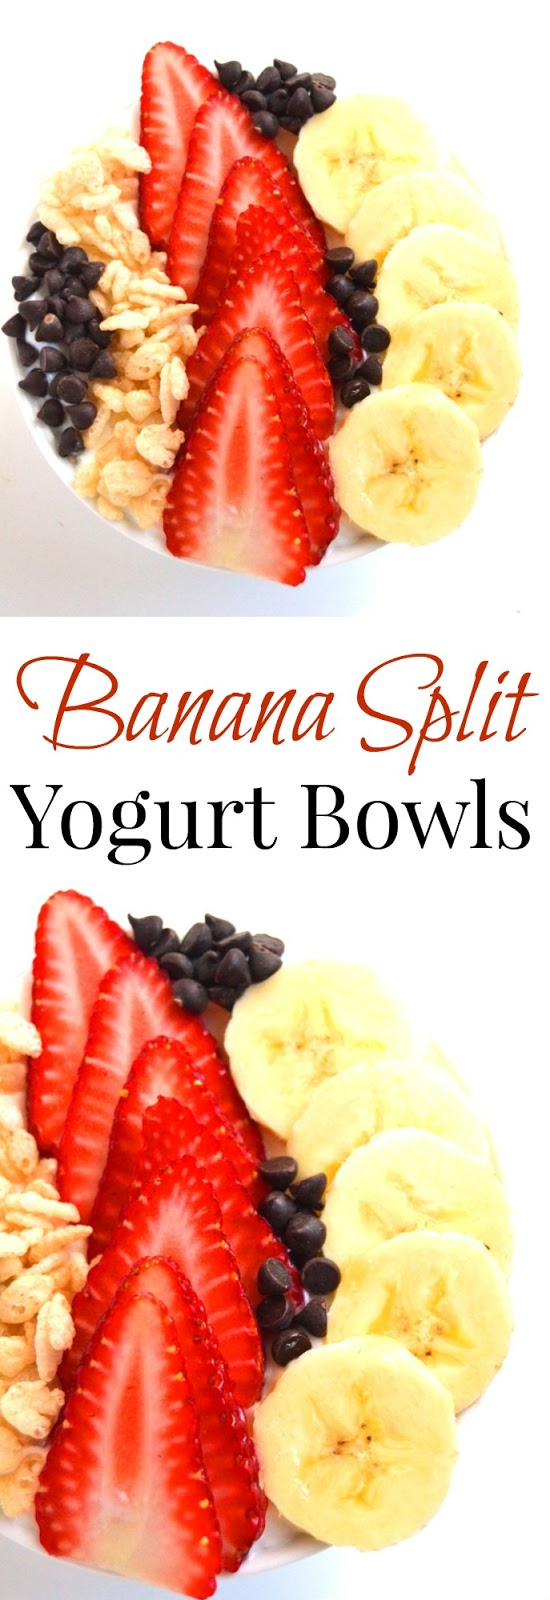 Banana Split Parfaits make the perfect nutritious 5 minute breakfast with Greek yogurt, fresh banana, strawberries, mini chocolate chips and cereal! www.nutritionistreviews.com